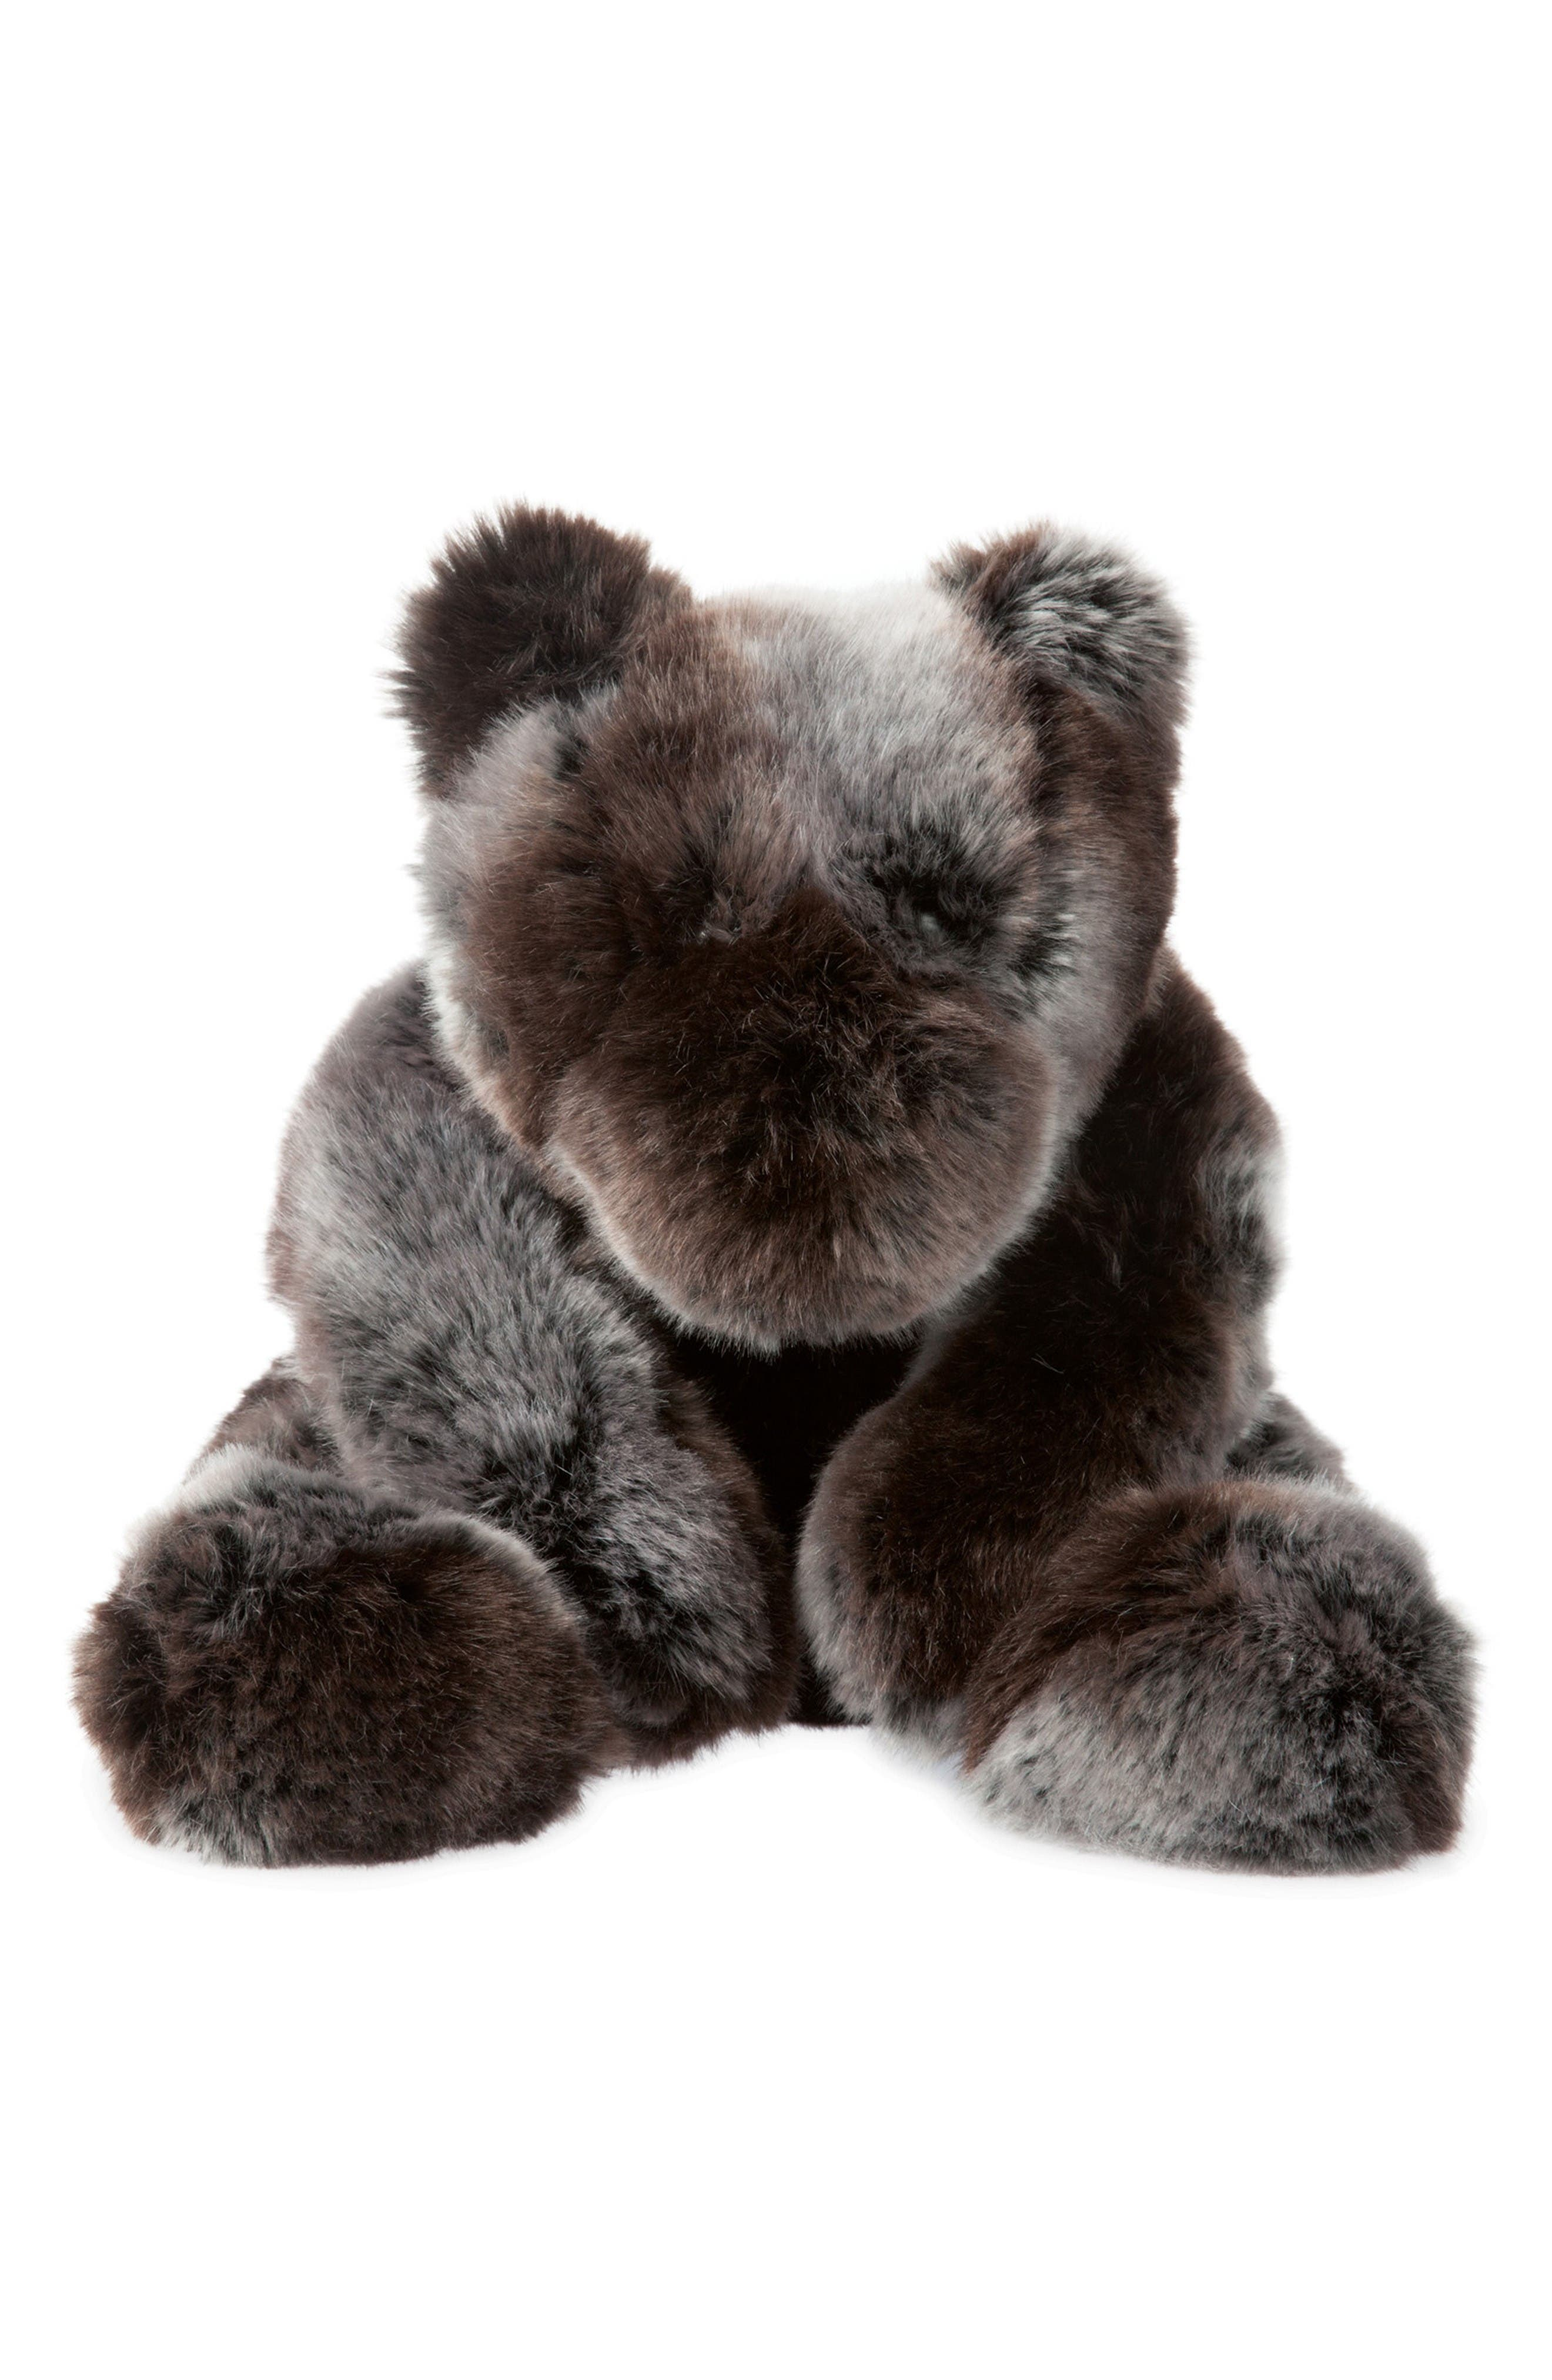 Luxe Sable Bear Stuffed Animal,                         Main,                         color, Brown